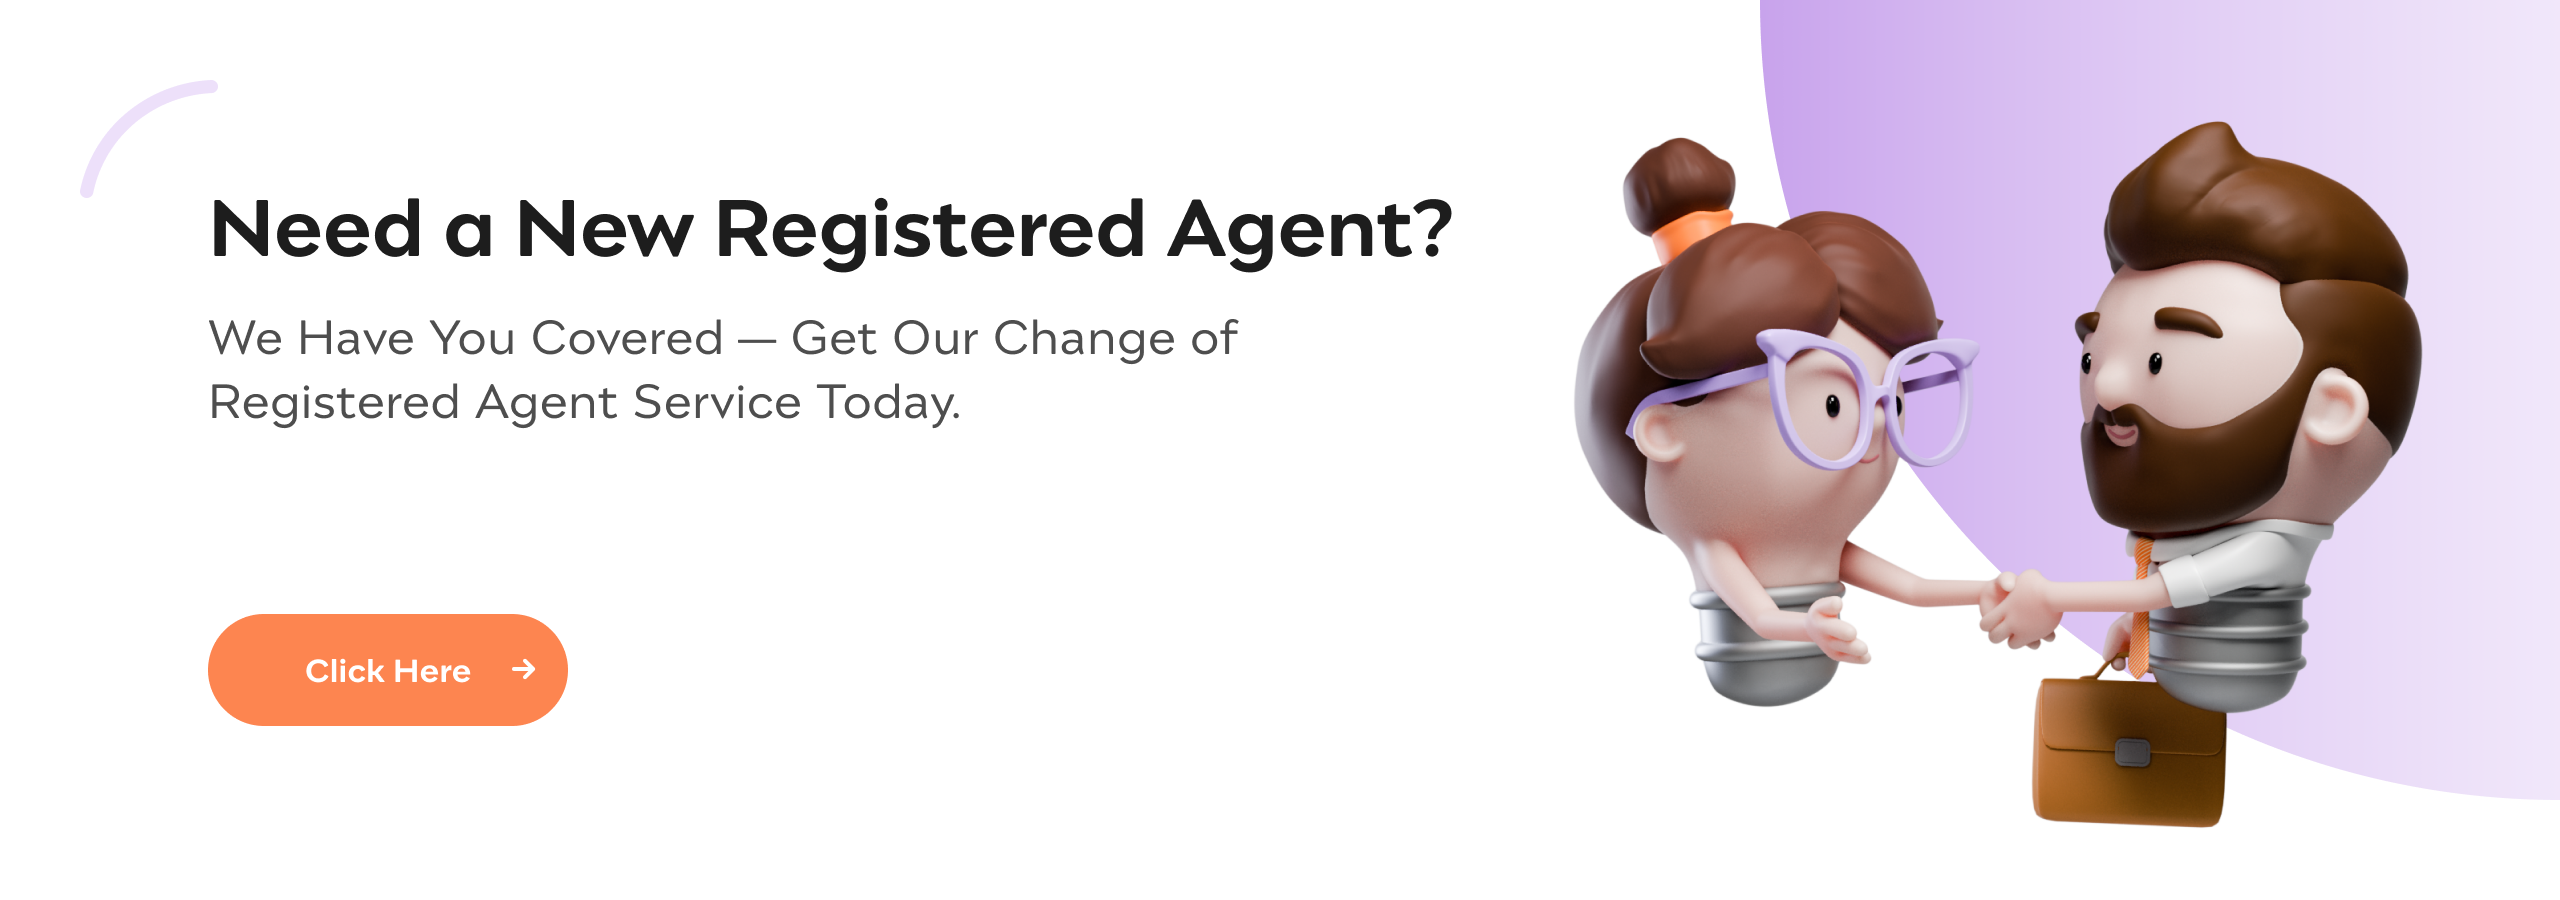 Incfile | Change of Registered Agent Service | Incfile